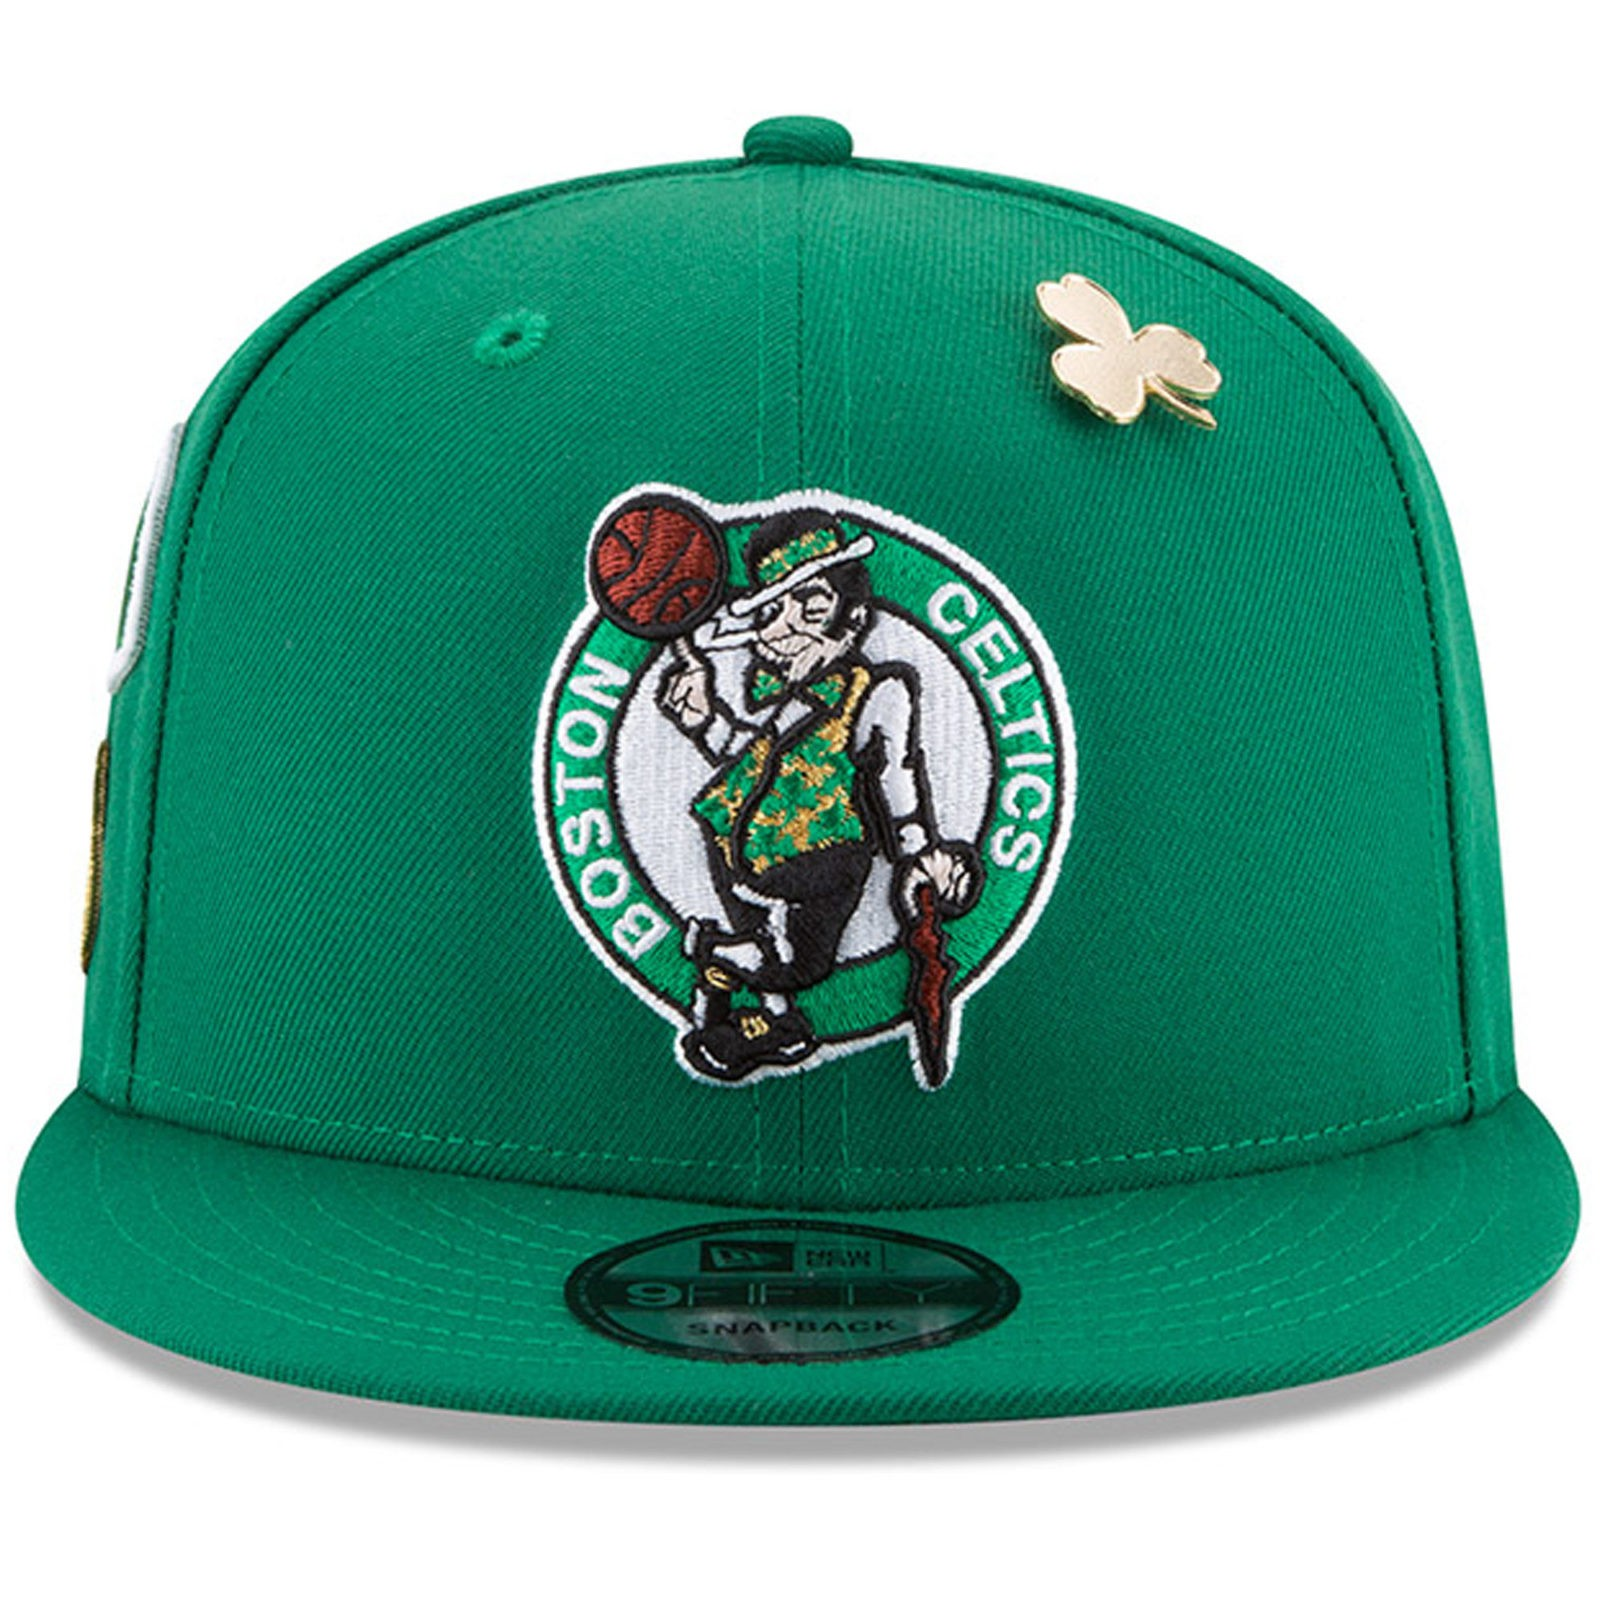 d5b6a367b2c Boston Celtics New Era 2018 Draft 9FIFTY Snapback Adjustable Hat – Green